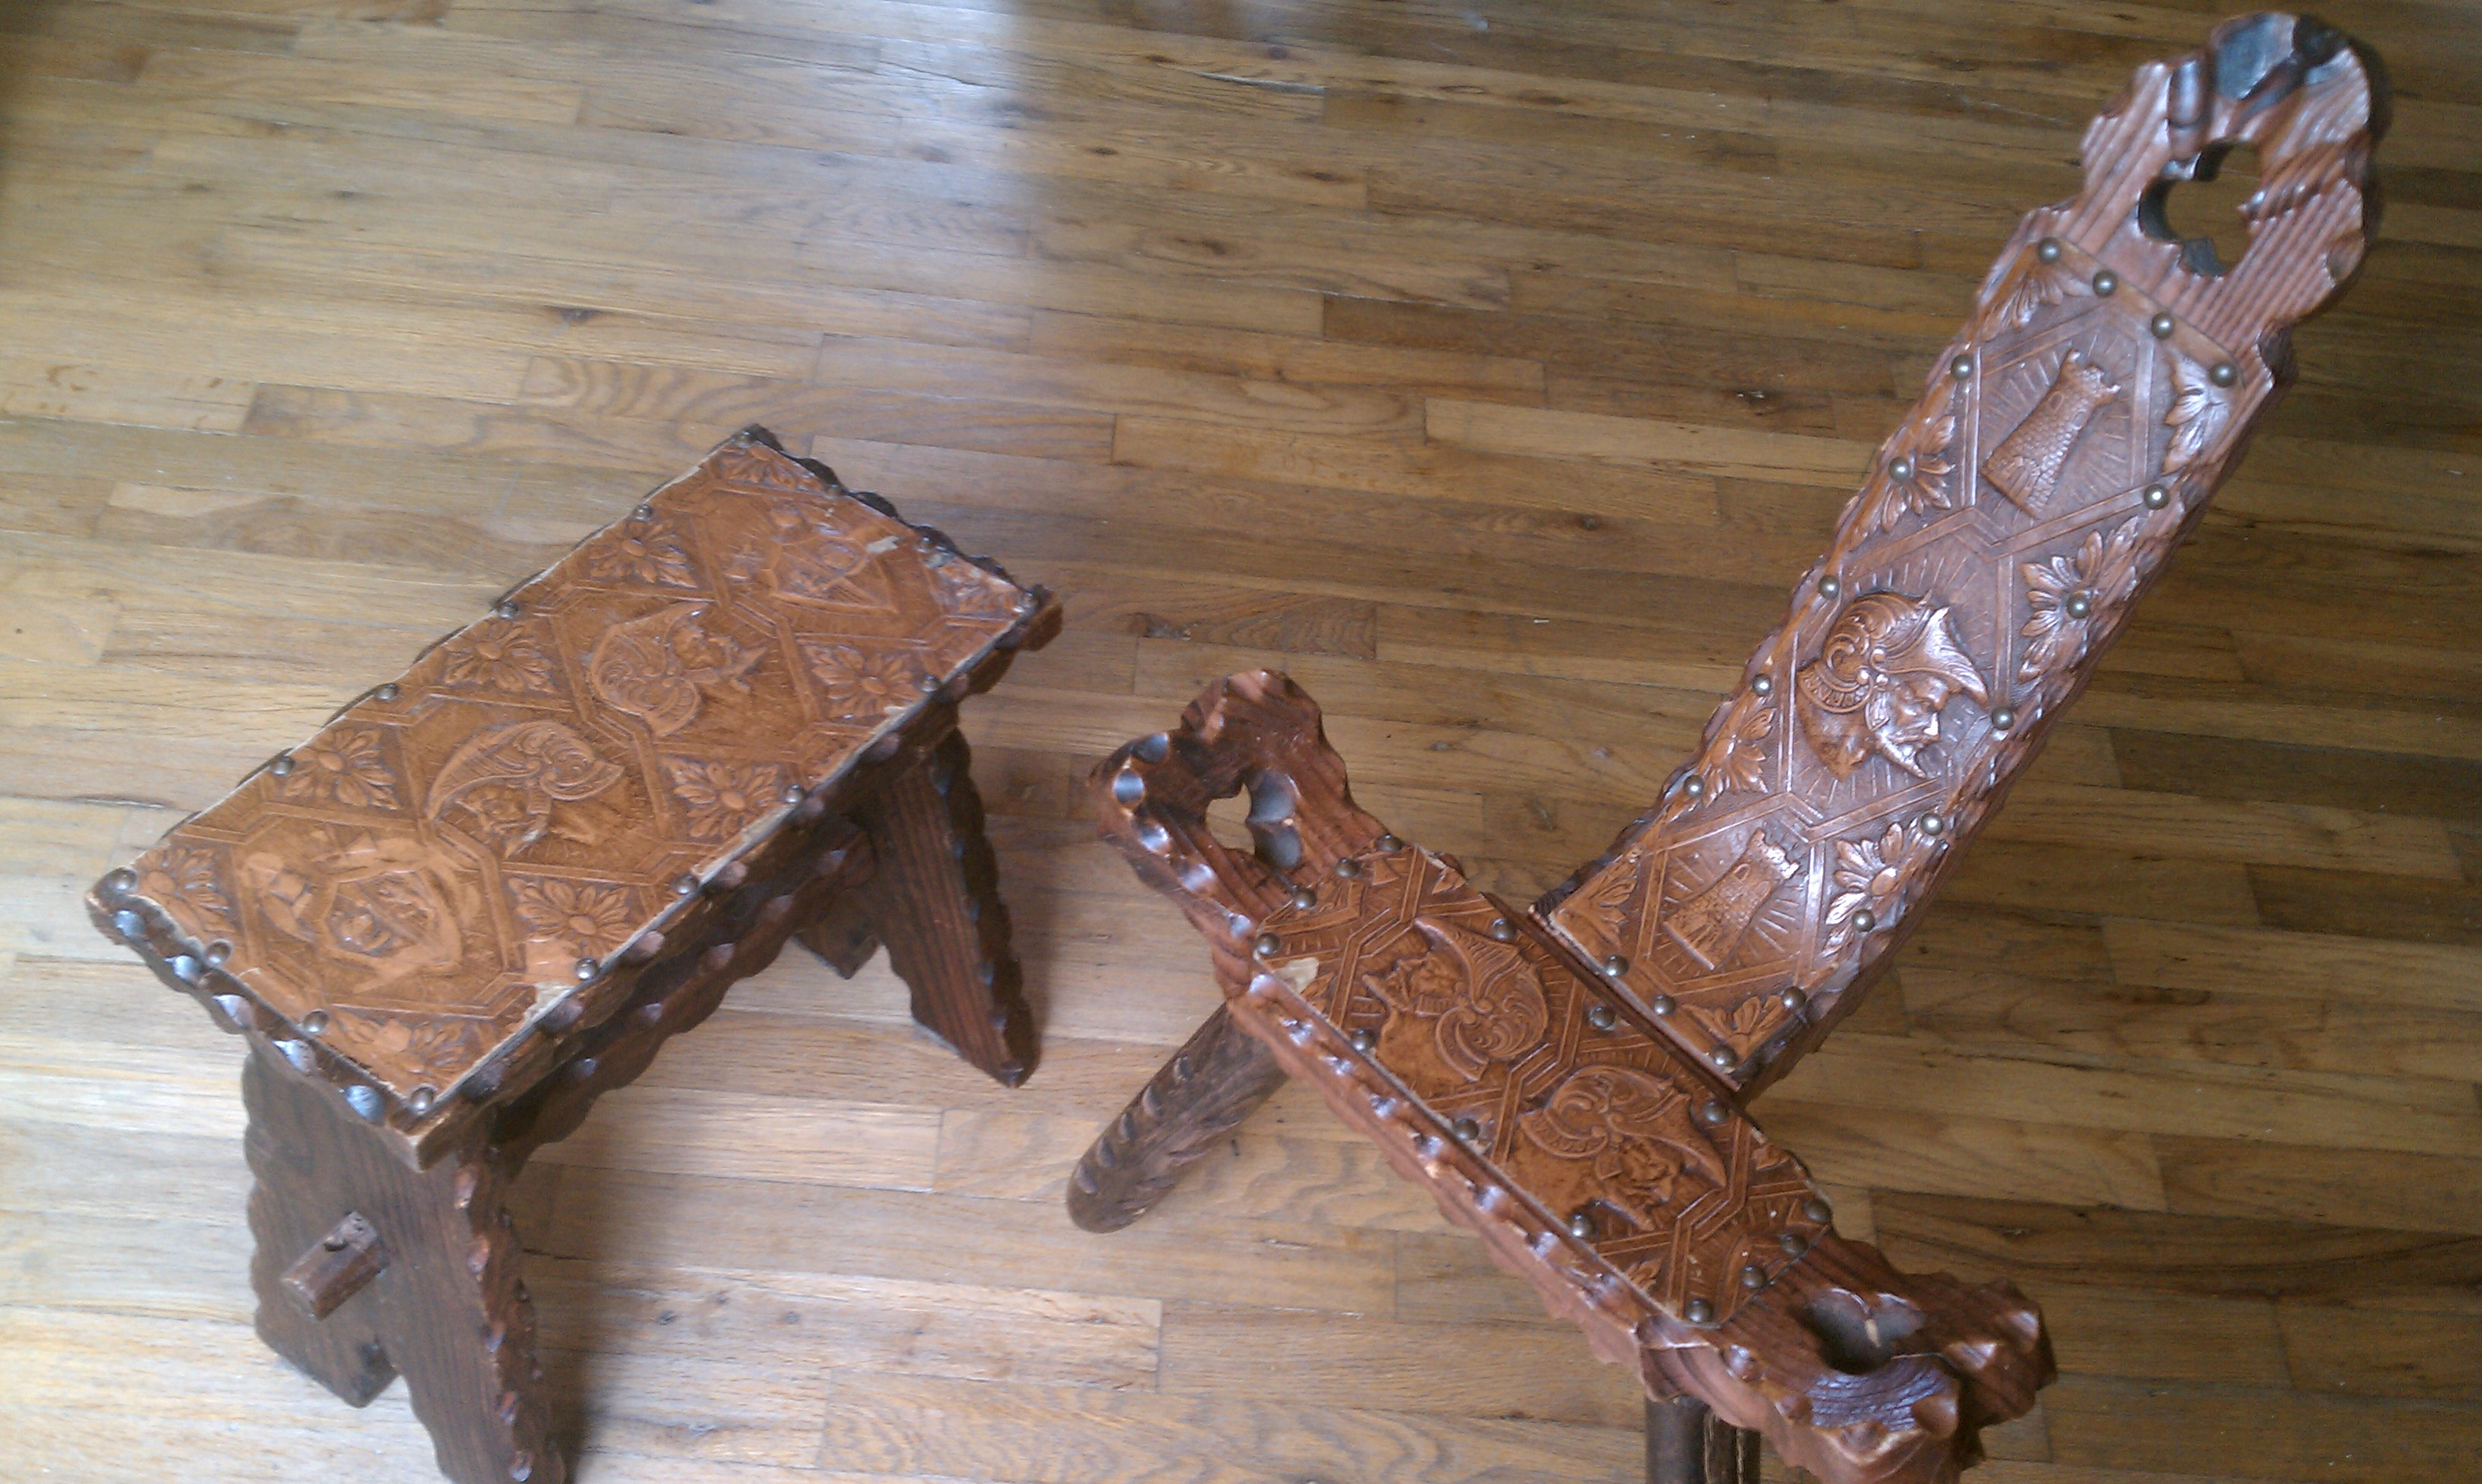 Antique birthing chair - My Antique Birthing Stool